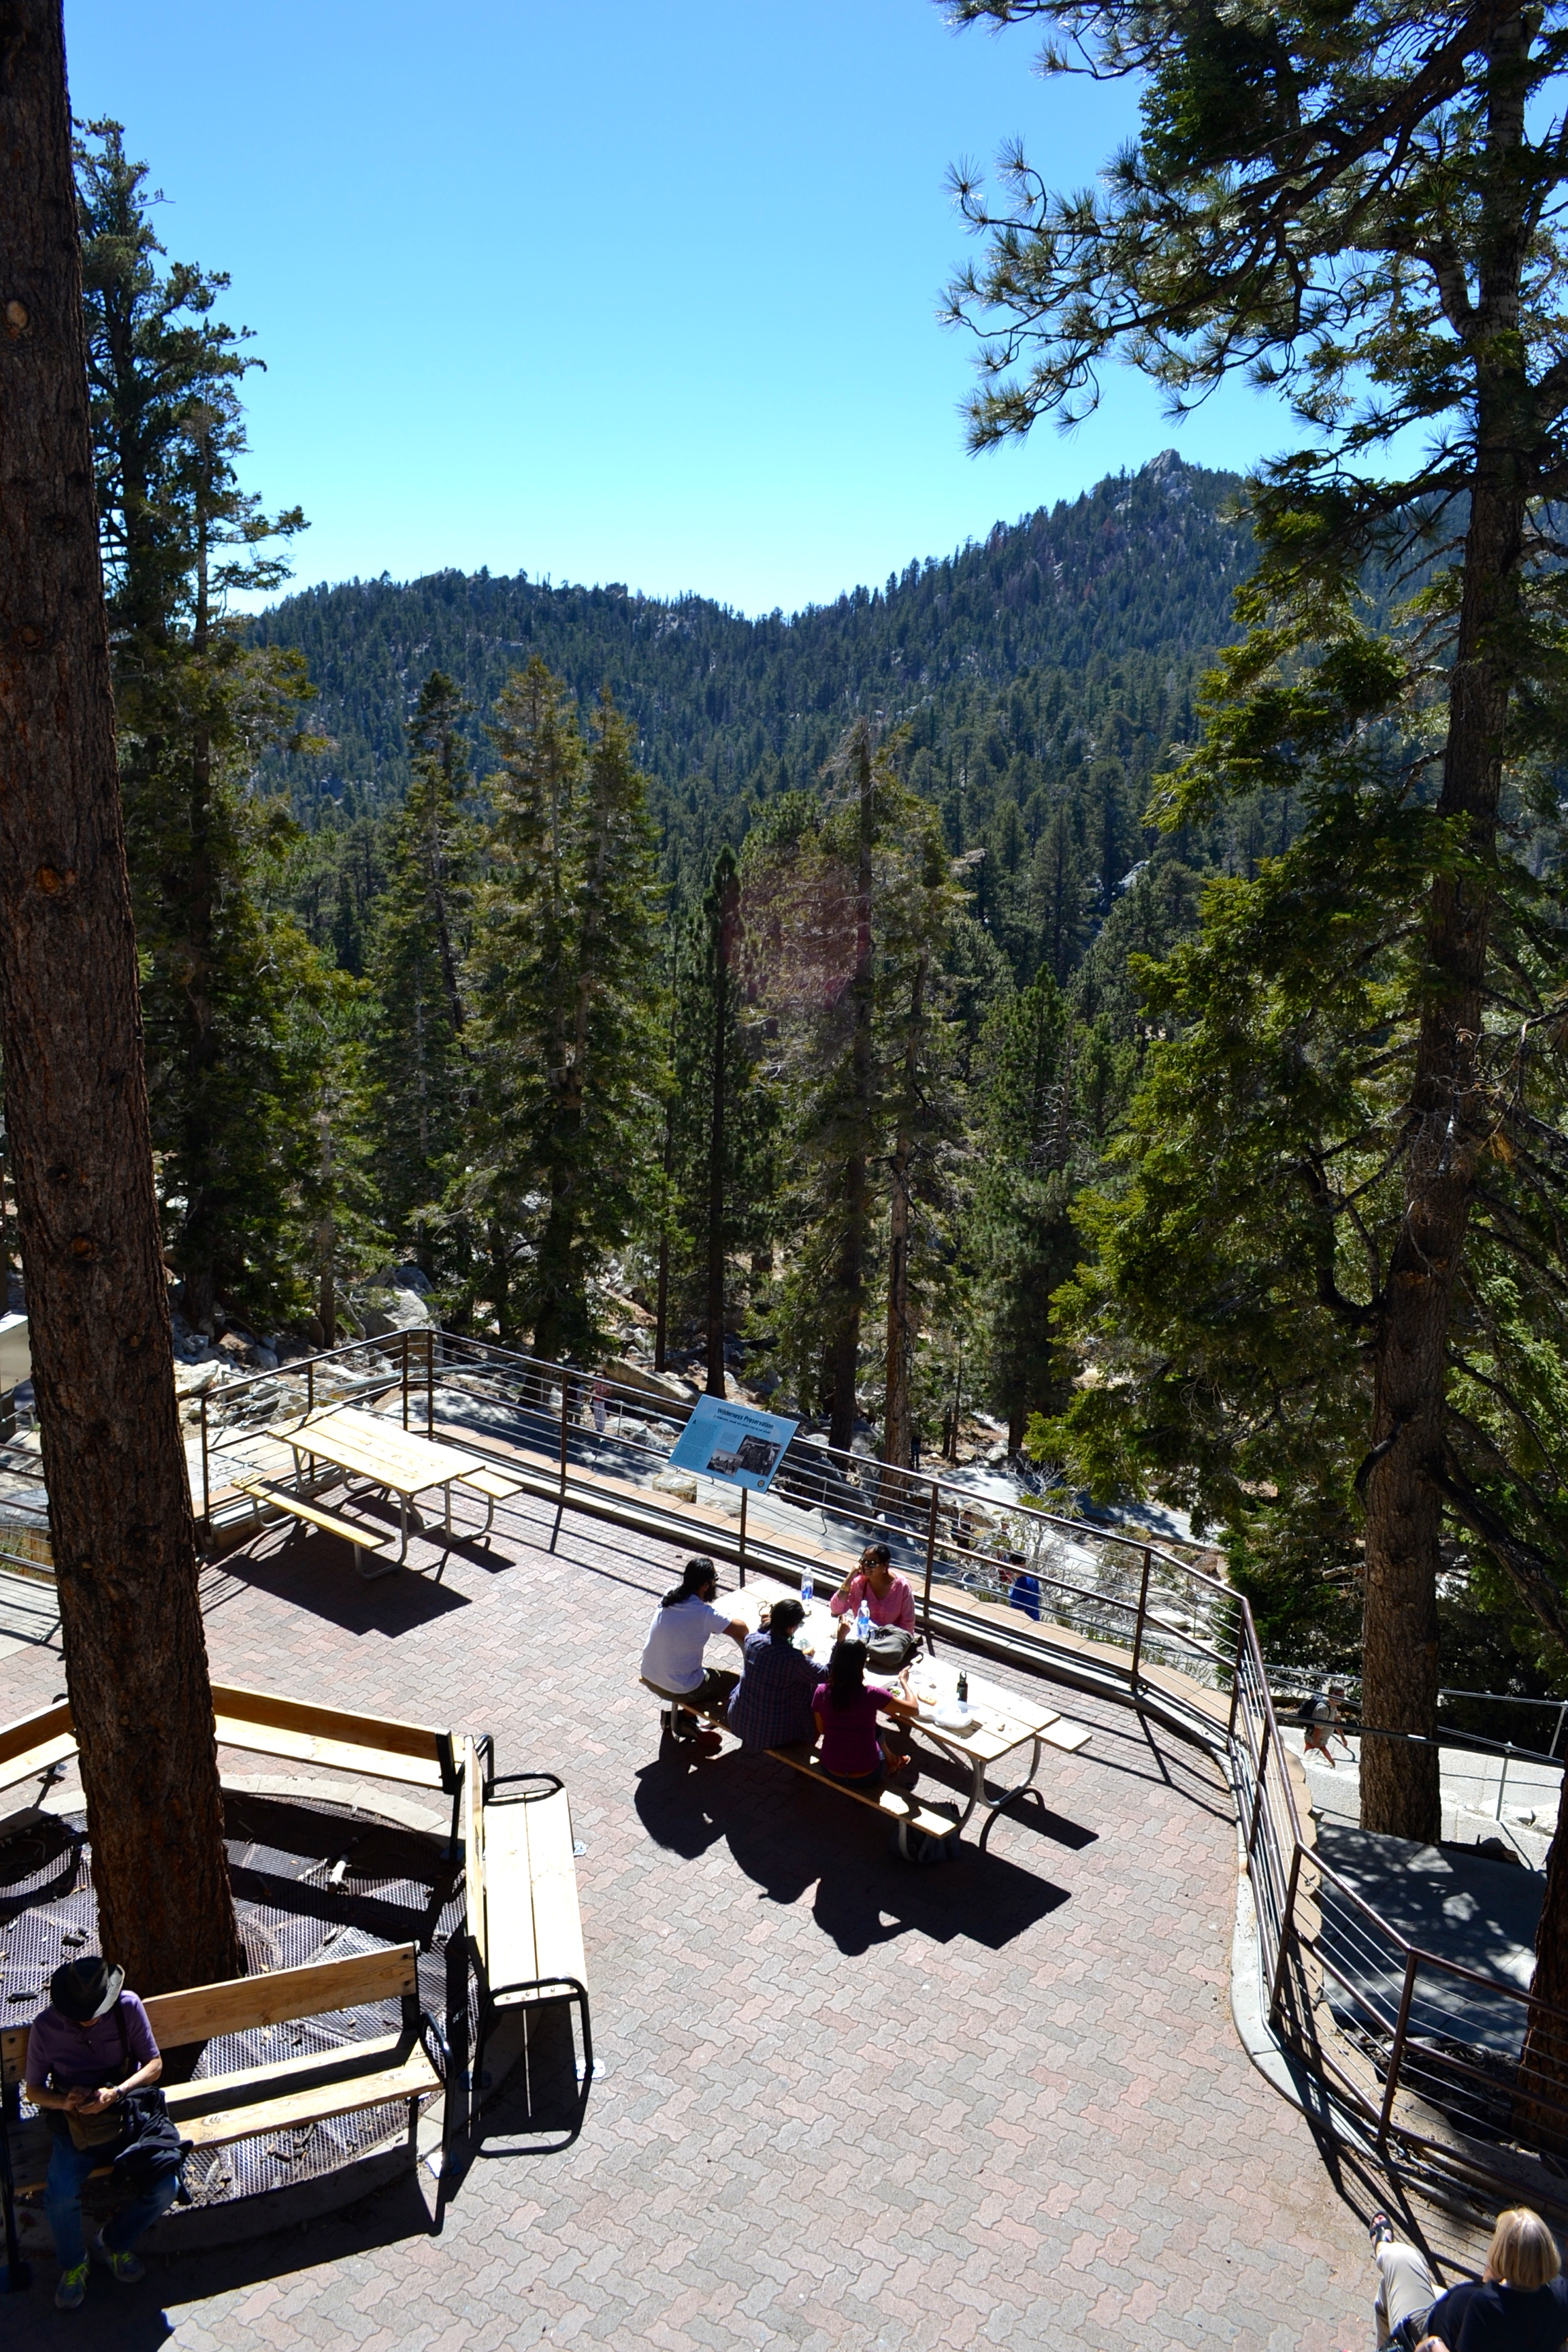 palm springs aerial tramway weather